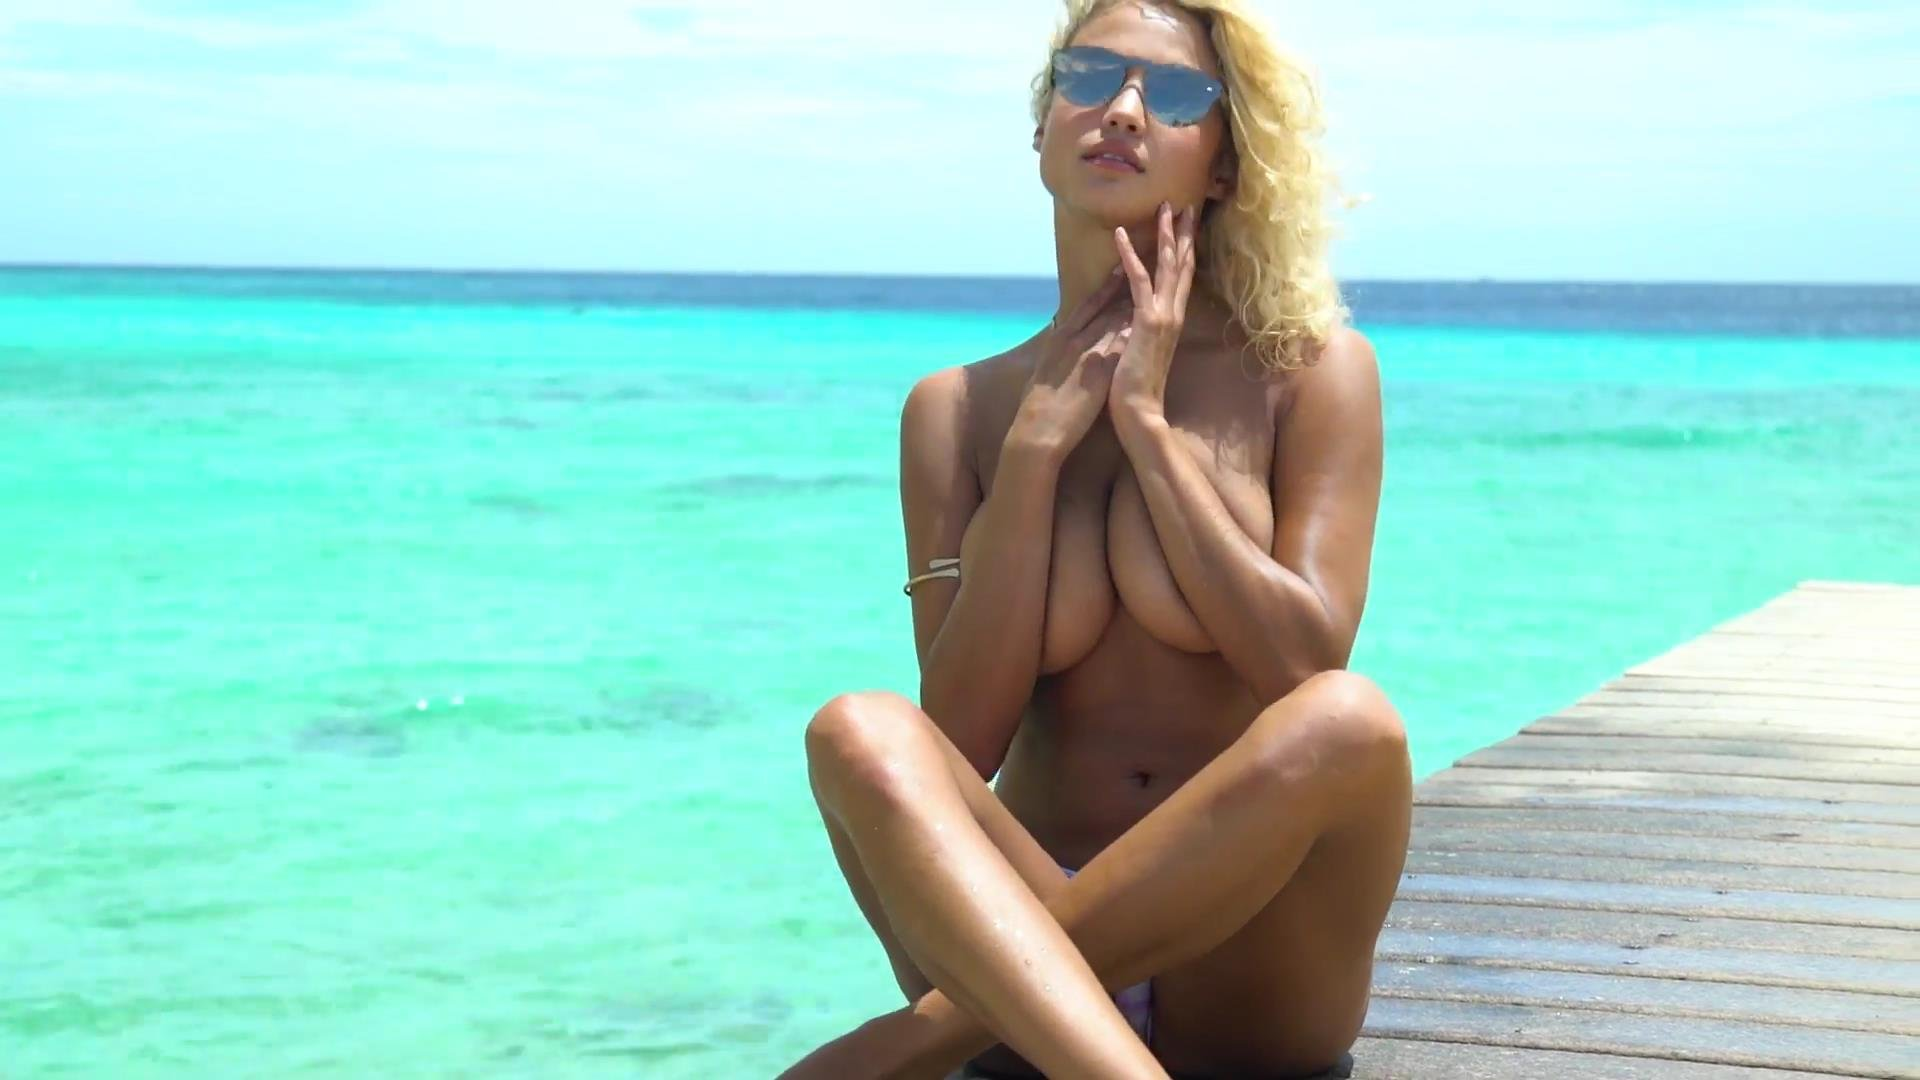 Boobs Sports Illustrated Nude Swimsuit Png